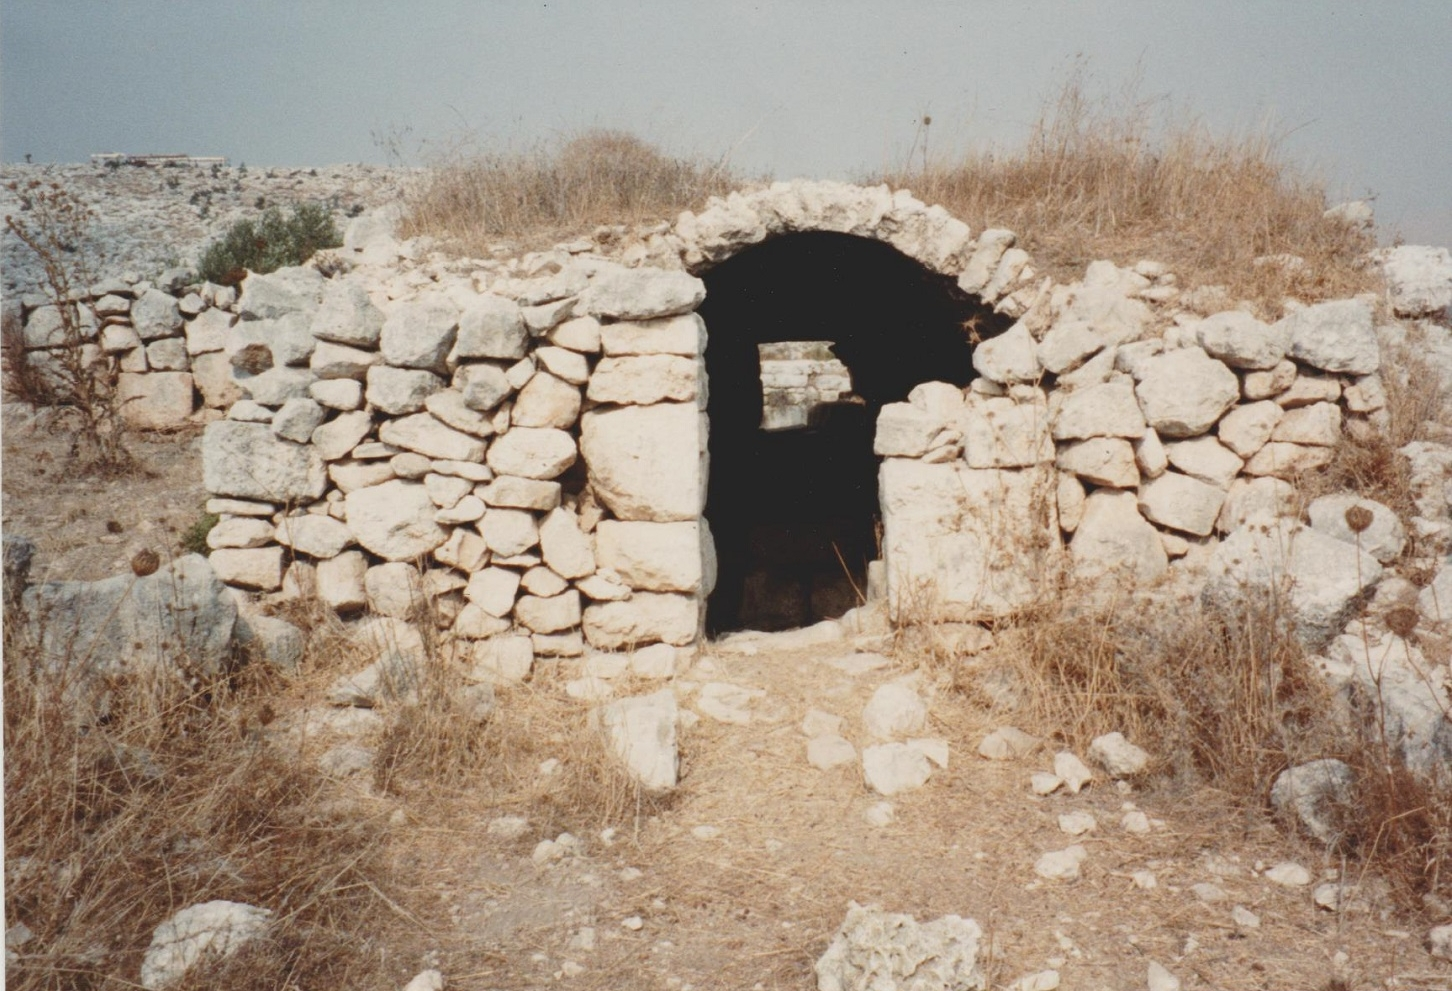 This small building has been interpreted as a Byzantine church or monastery. All pottery and tegulae (small tiles) visible on the surface in 1990 were certainly of Byzantine date. Credit: Eleanor Scott